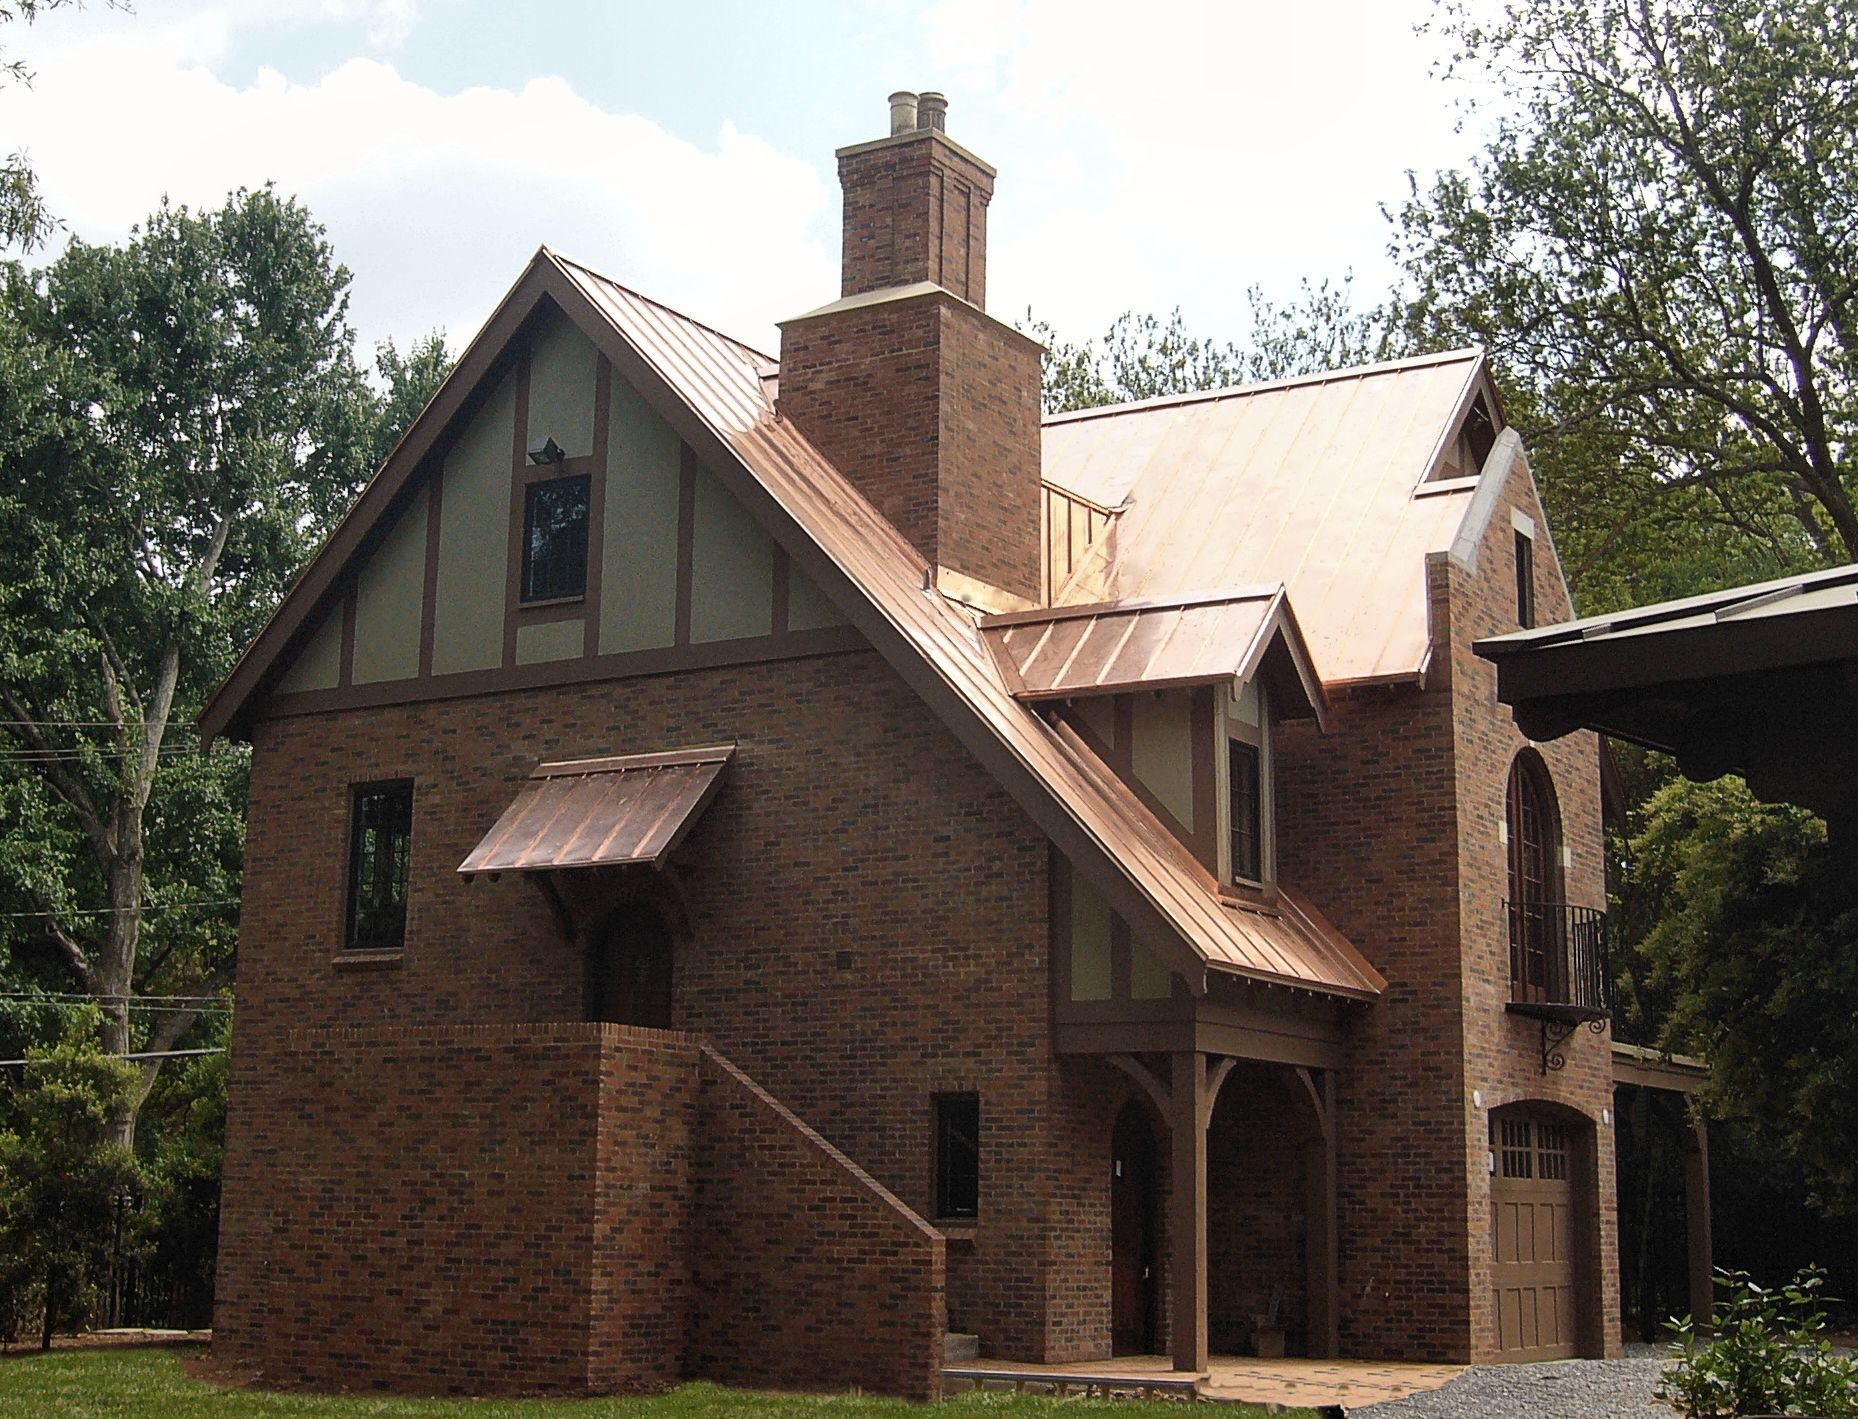 Copper Is One Of The Most Popular Metals For Roofing Even Though It Is Expensive Its Classic Look And Long Lasting Durability Copper Roof Tudor House Roofing